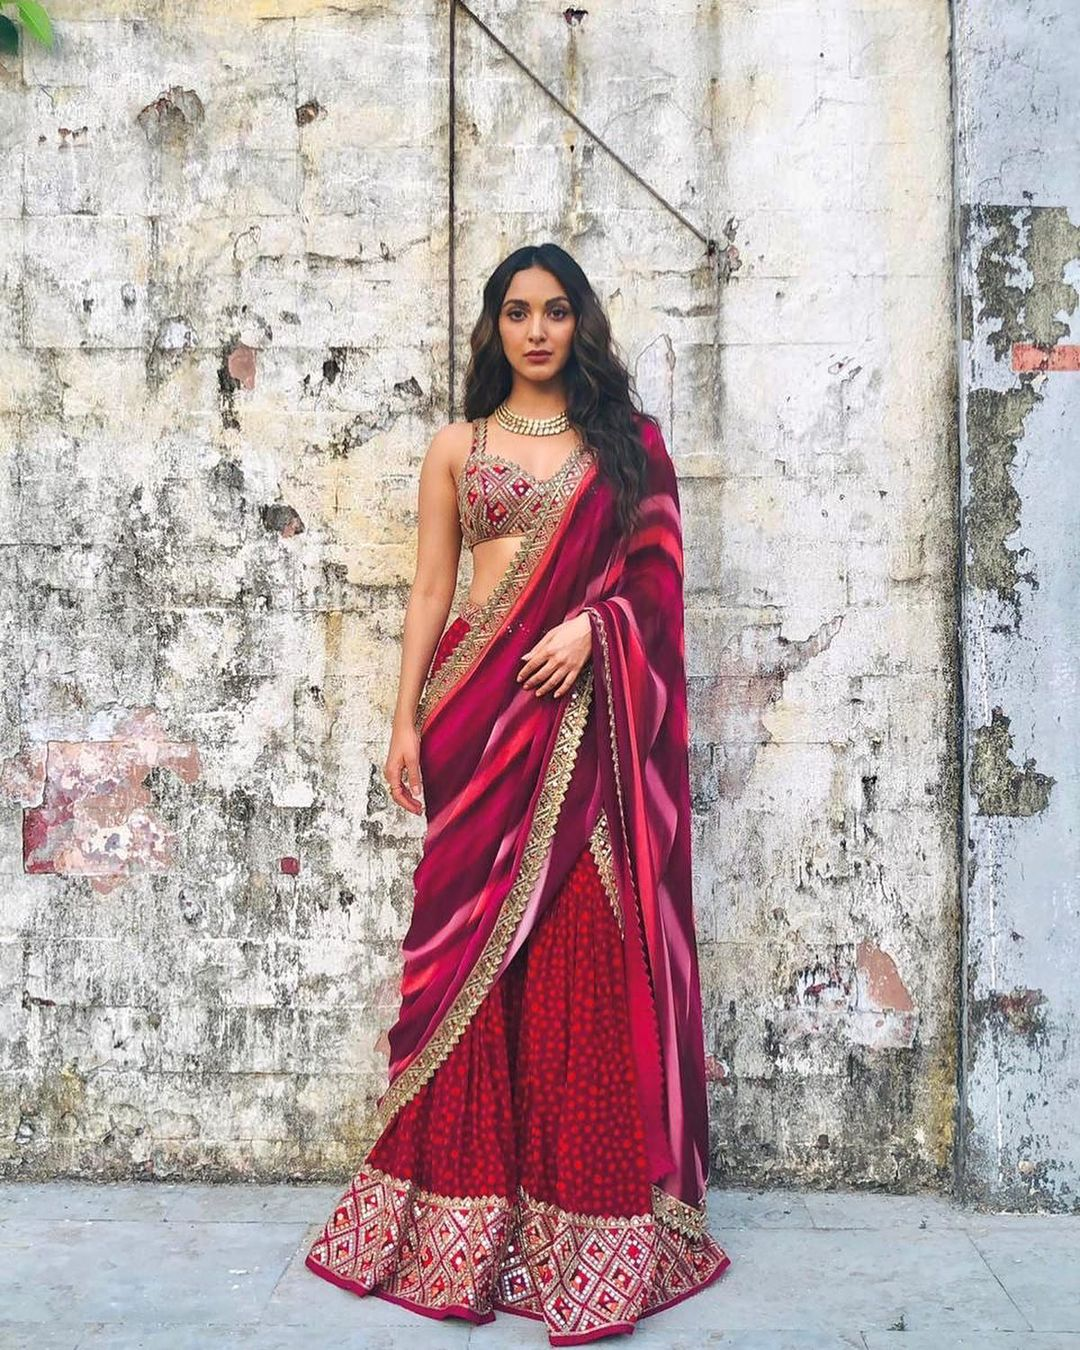 Kiara Advani Saree Images